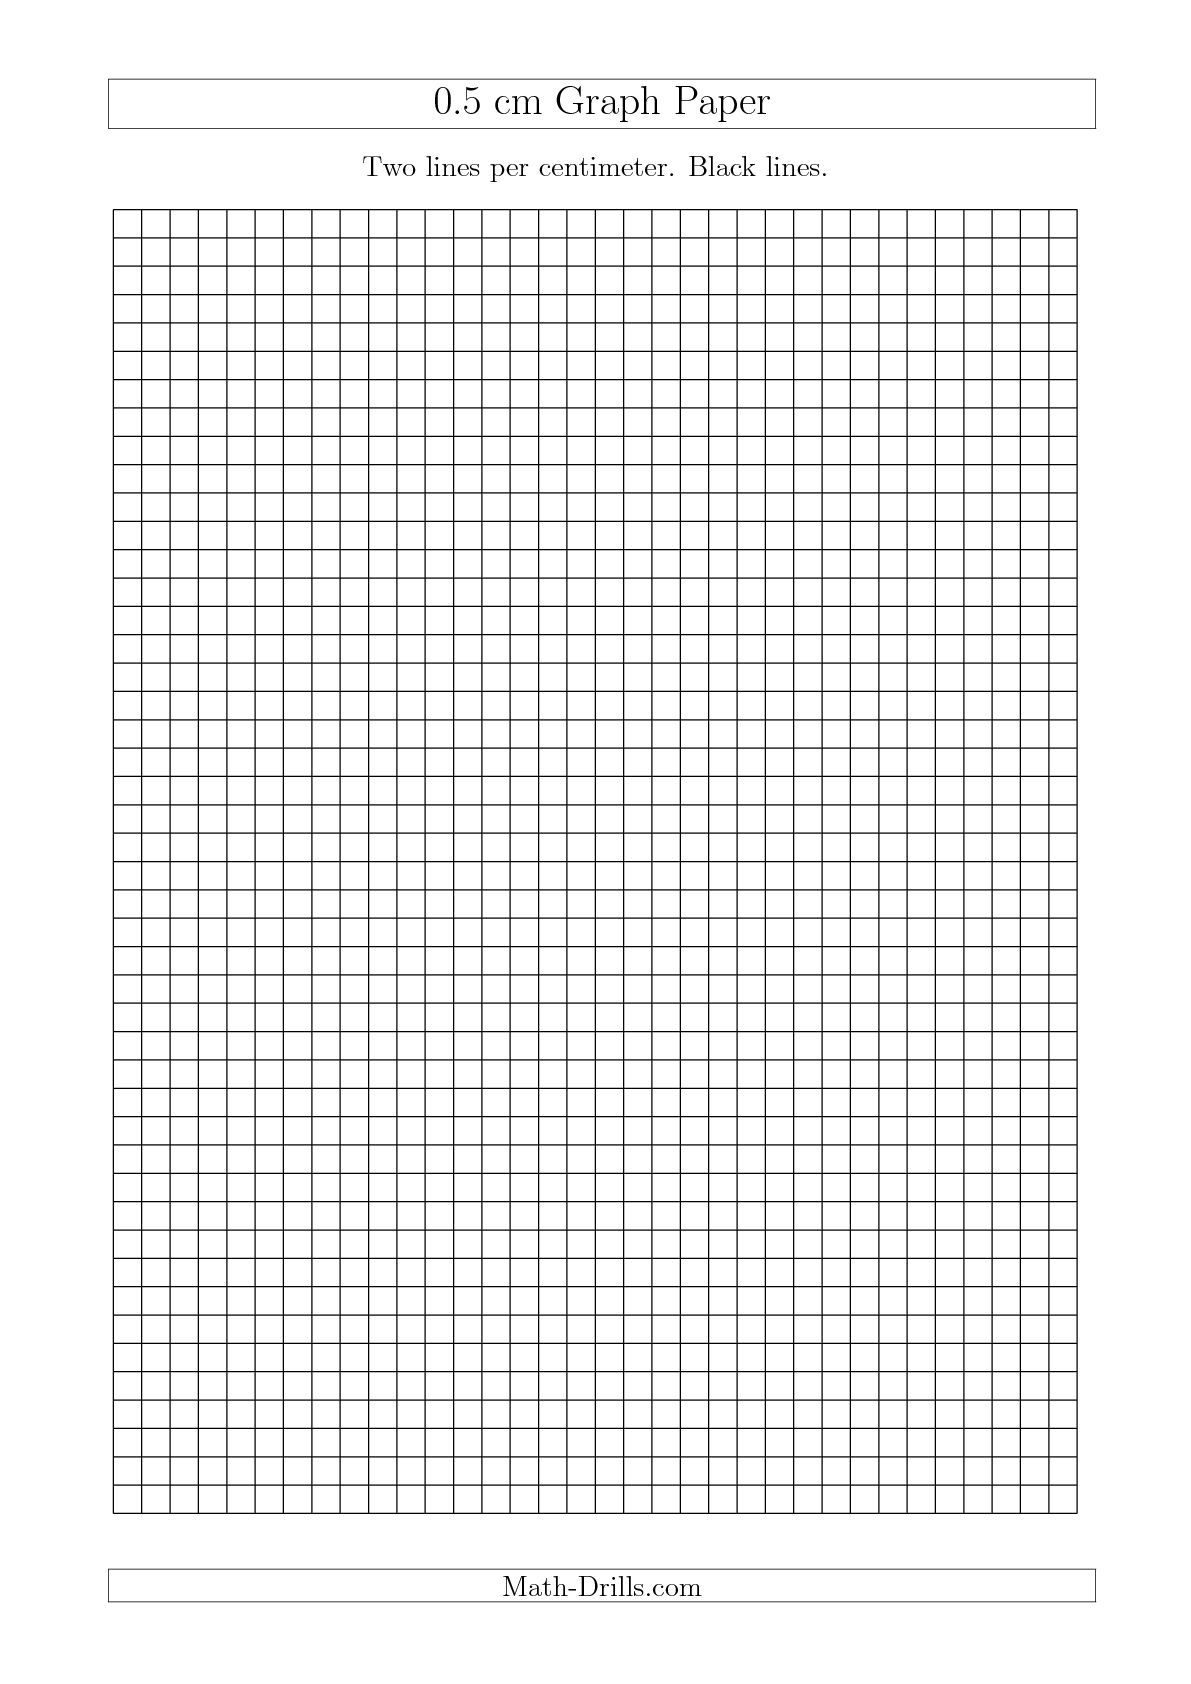 The 0 5 Cm Graph Paper With Black Lines A4 Size A Math